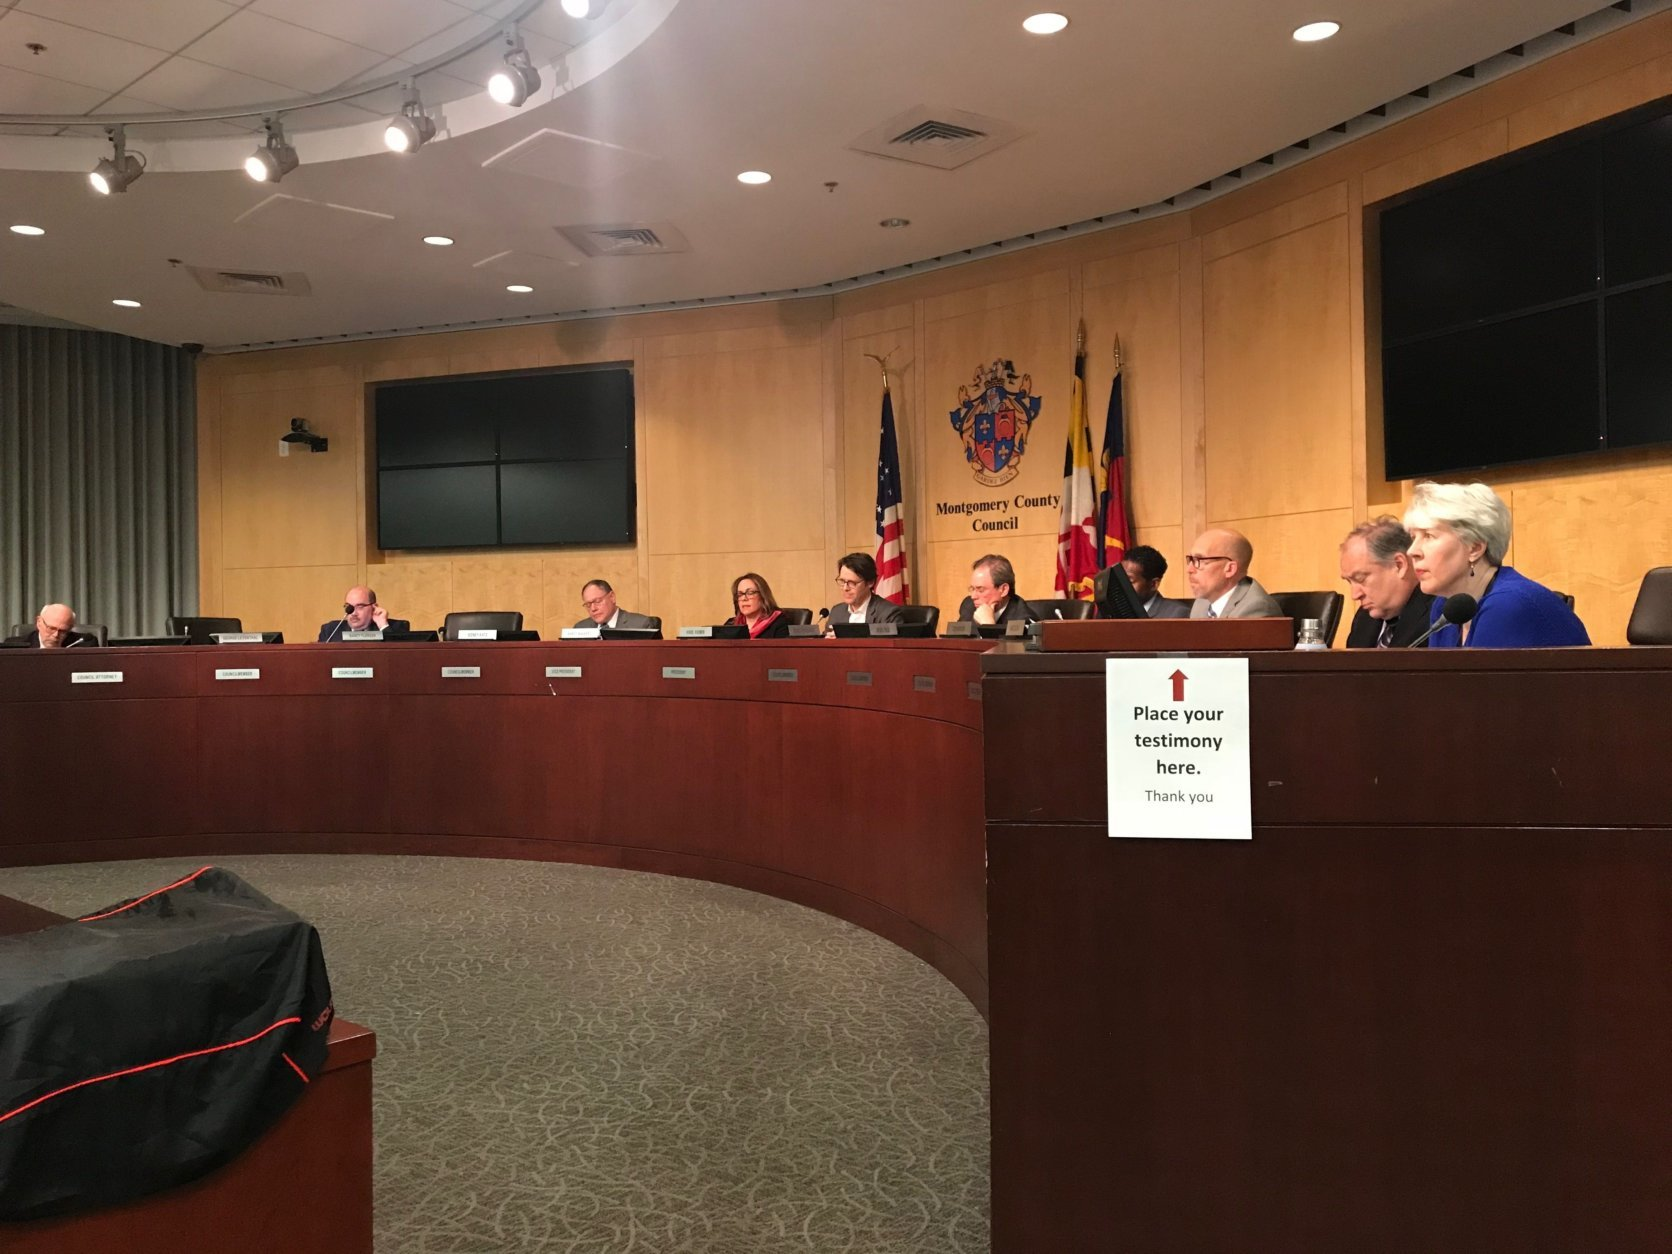 At a Montgomery County Council public hearing Tuesday night, some residents testified against a change to the zoning laws that would allow the antennas on utility poles and buildings near houses and schools. (WTOP/Dick Uliano)